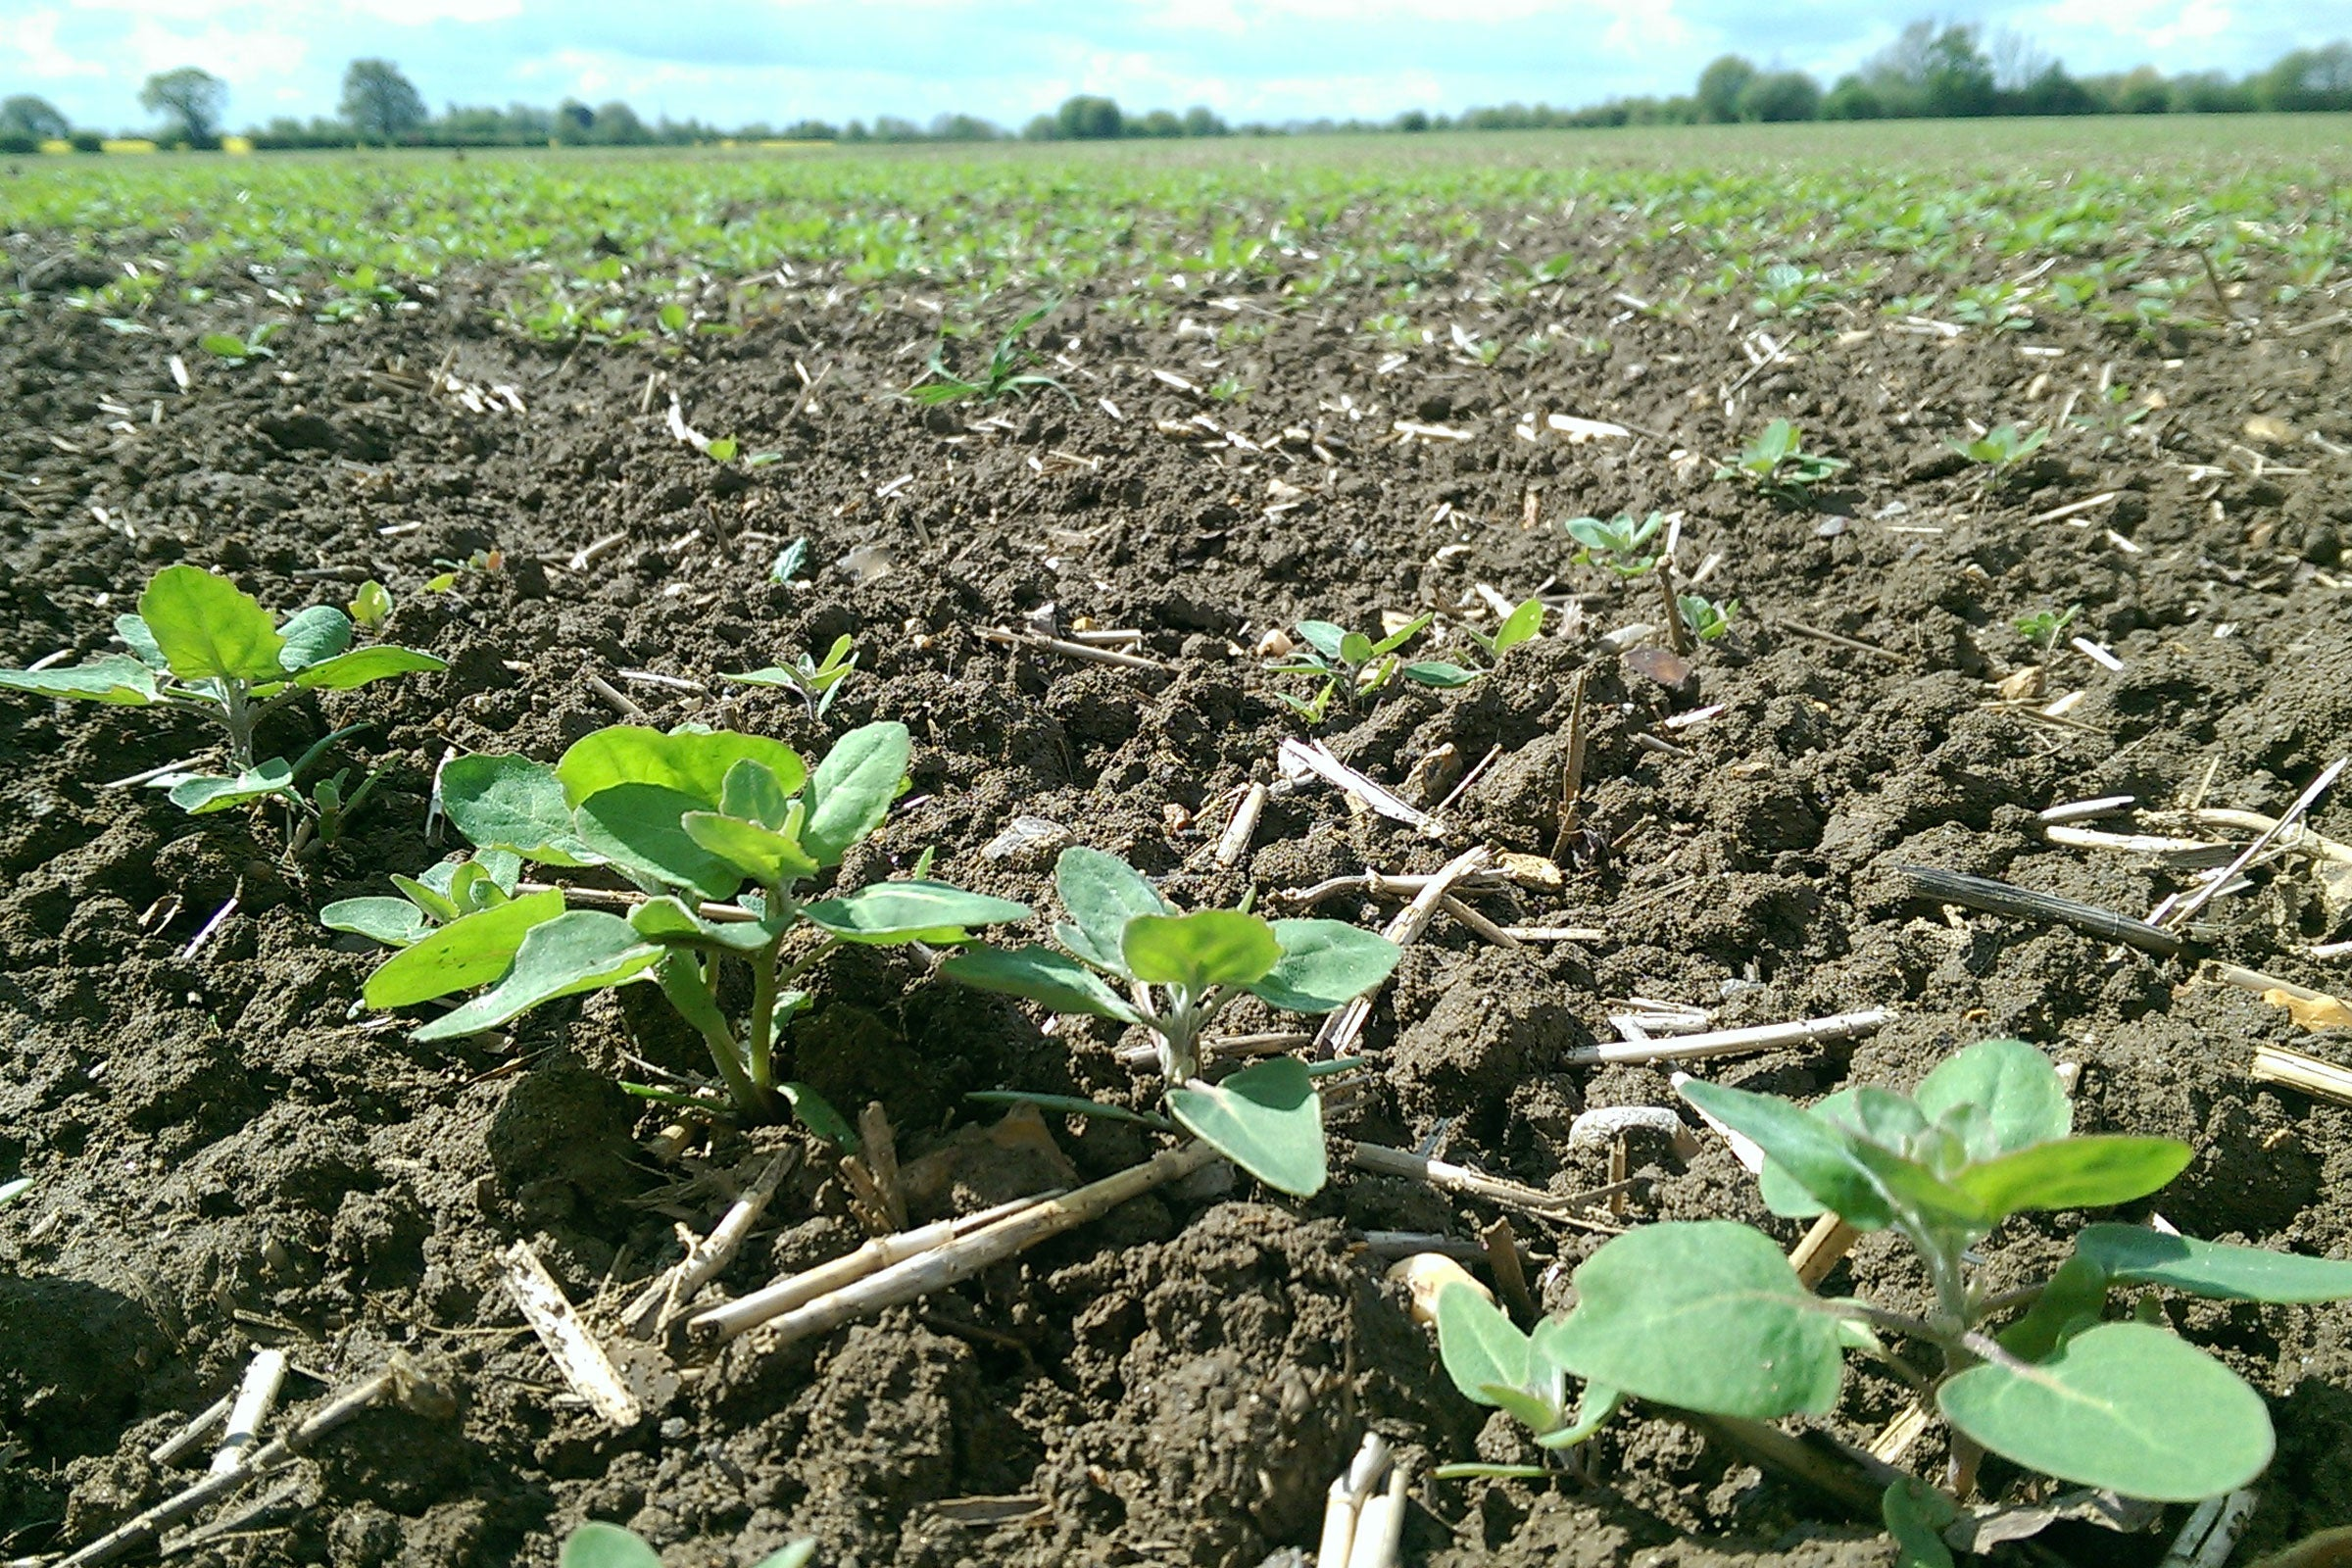 British Quinoa seedlings in an Essex field